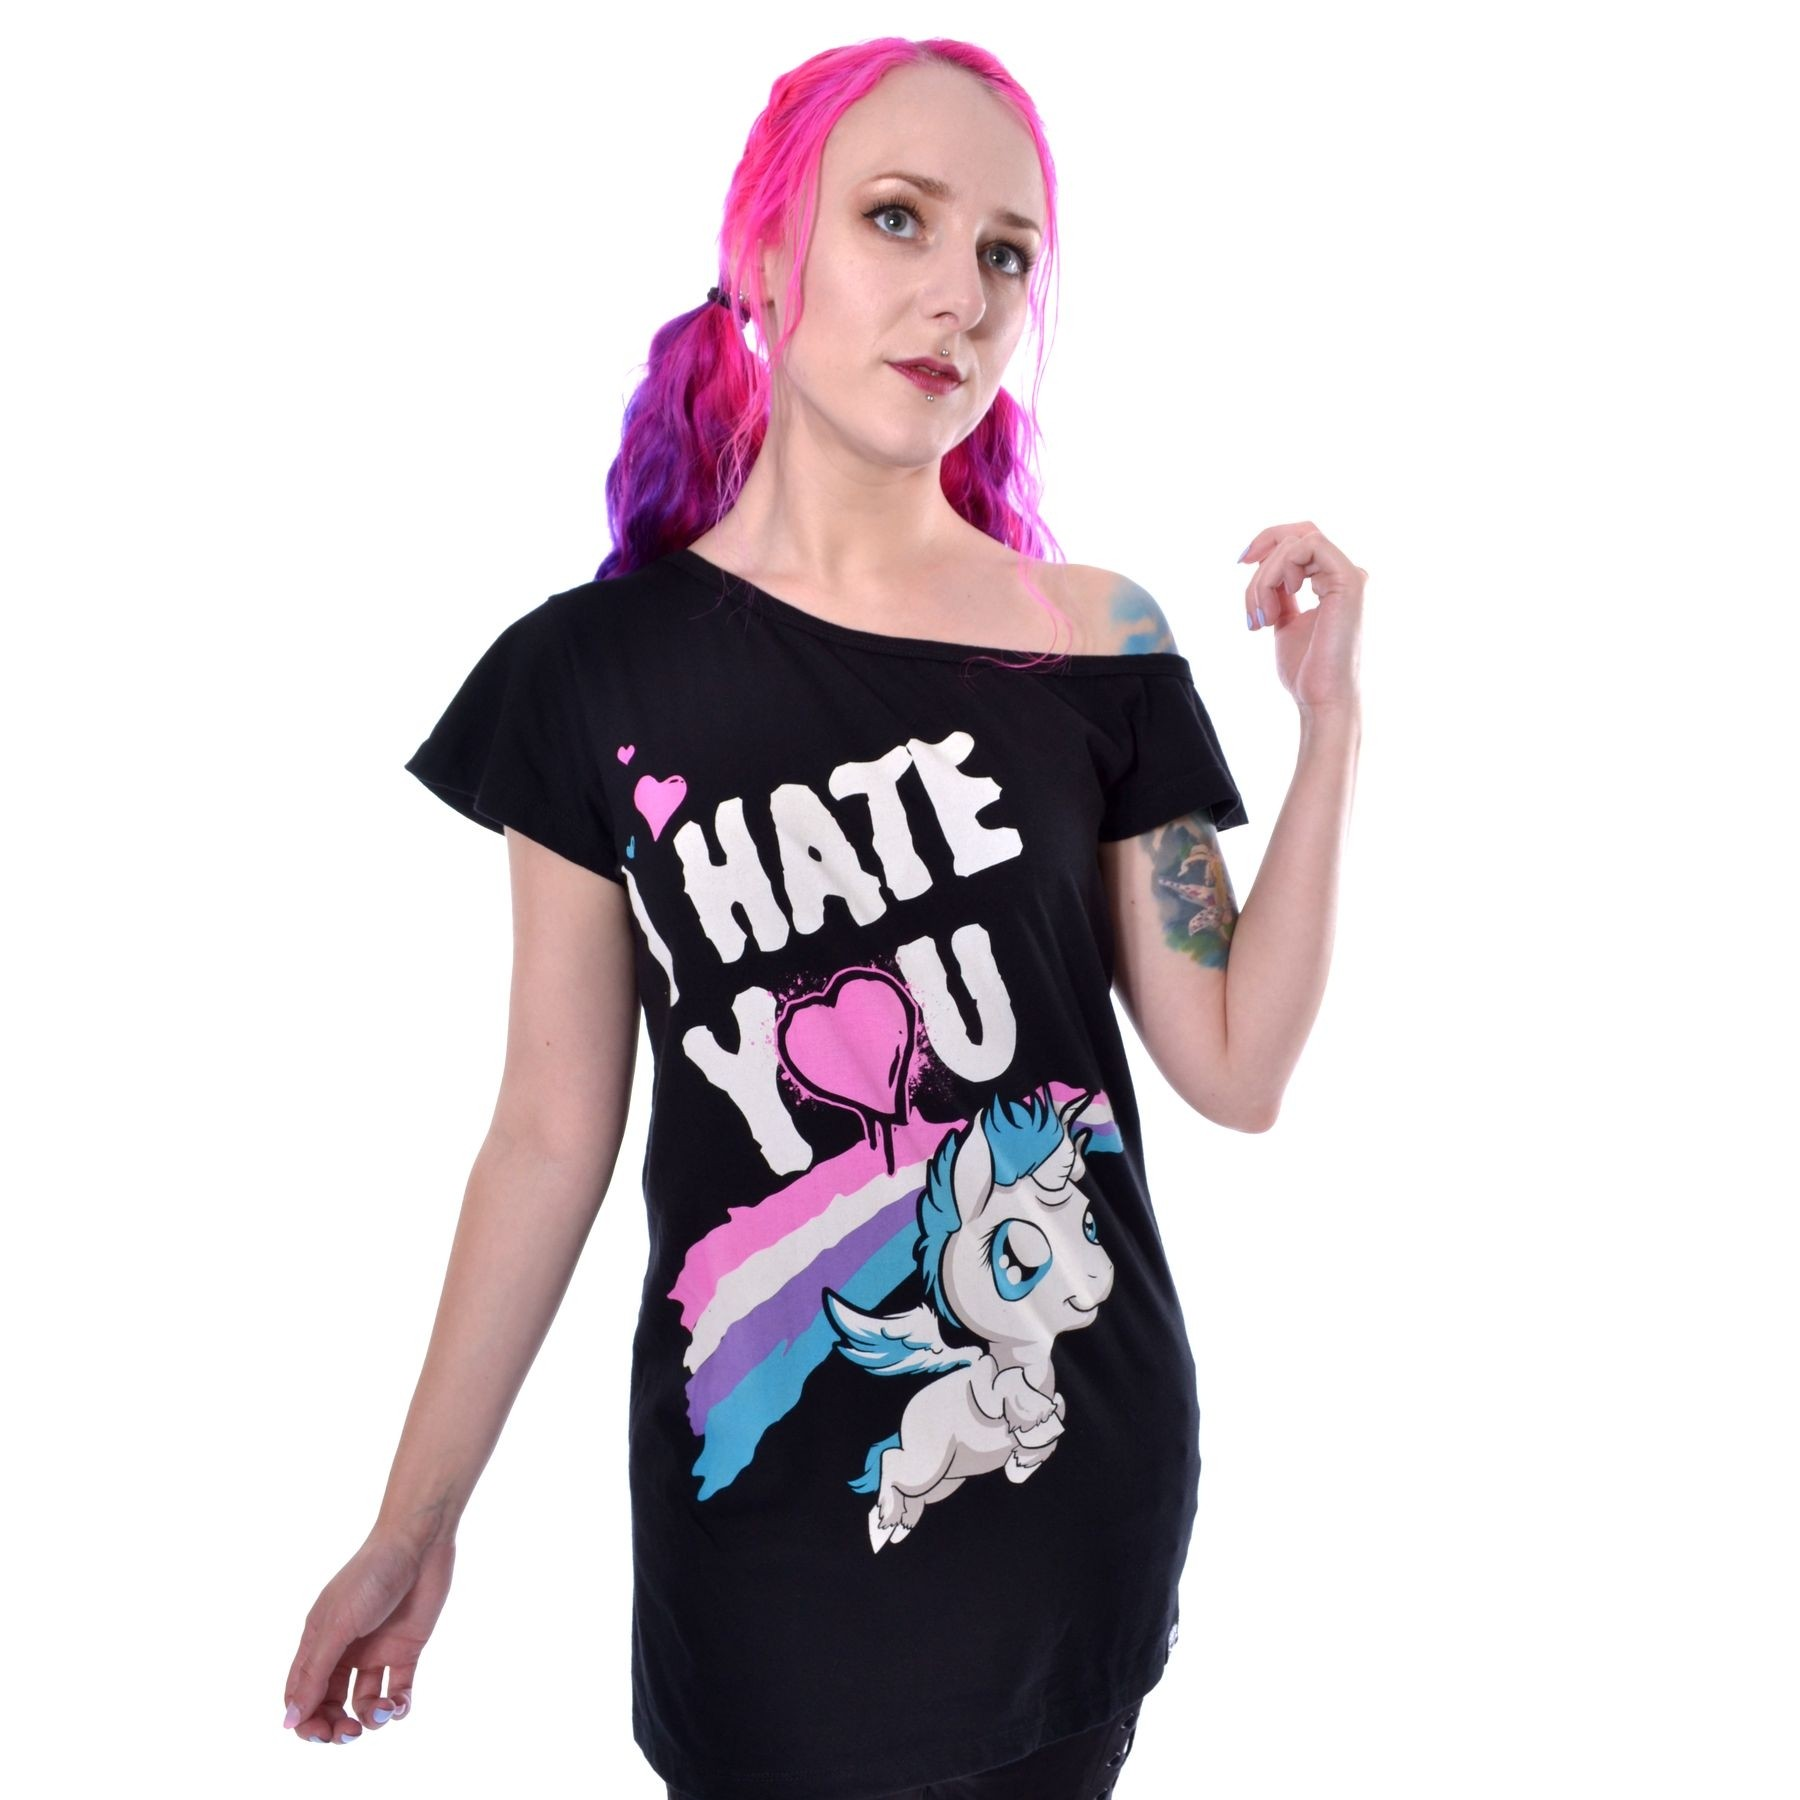 CUPCAKE CULT - Hate You Top Ladies Black *a1